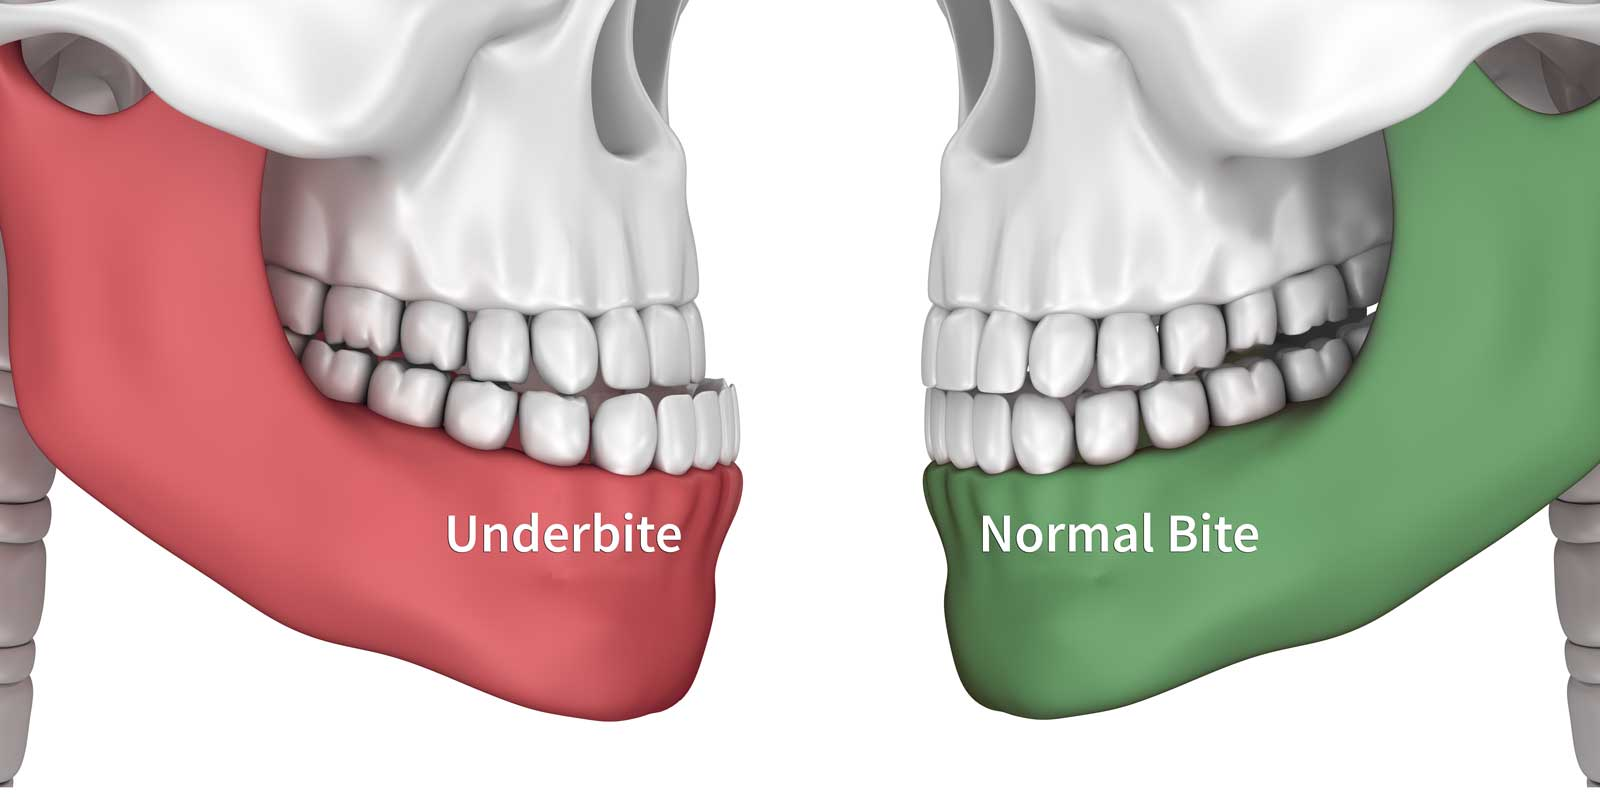 Comparison of normal bite and underbite